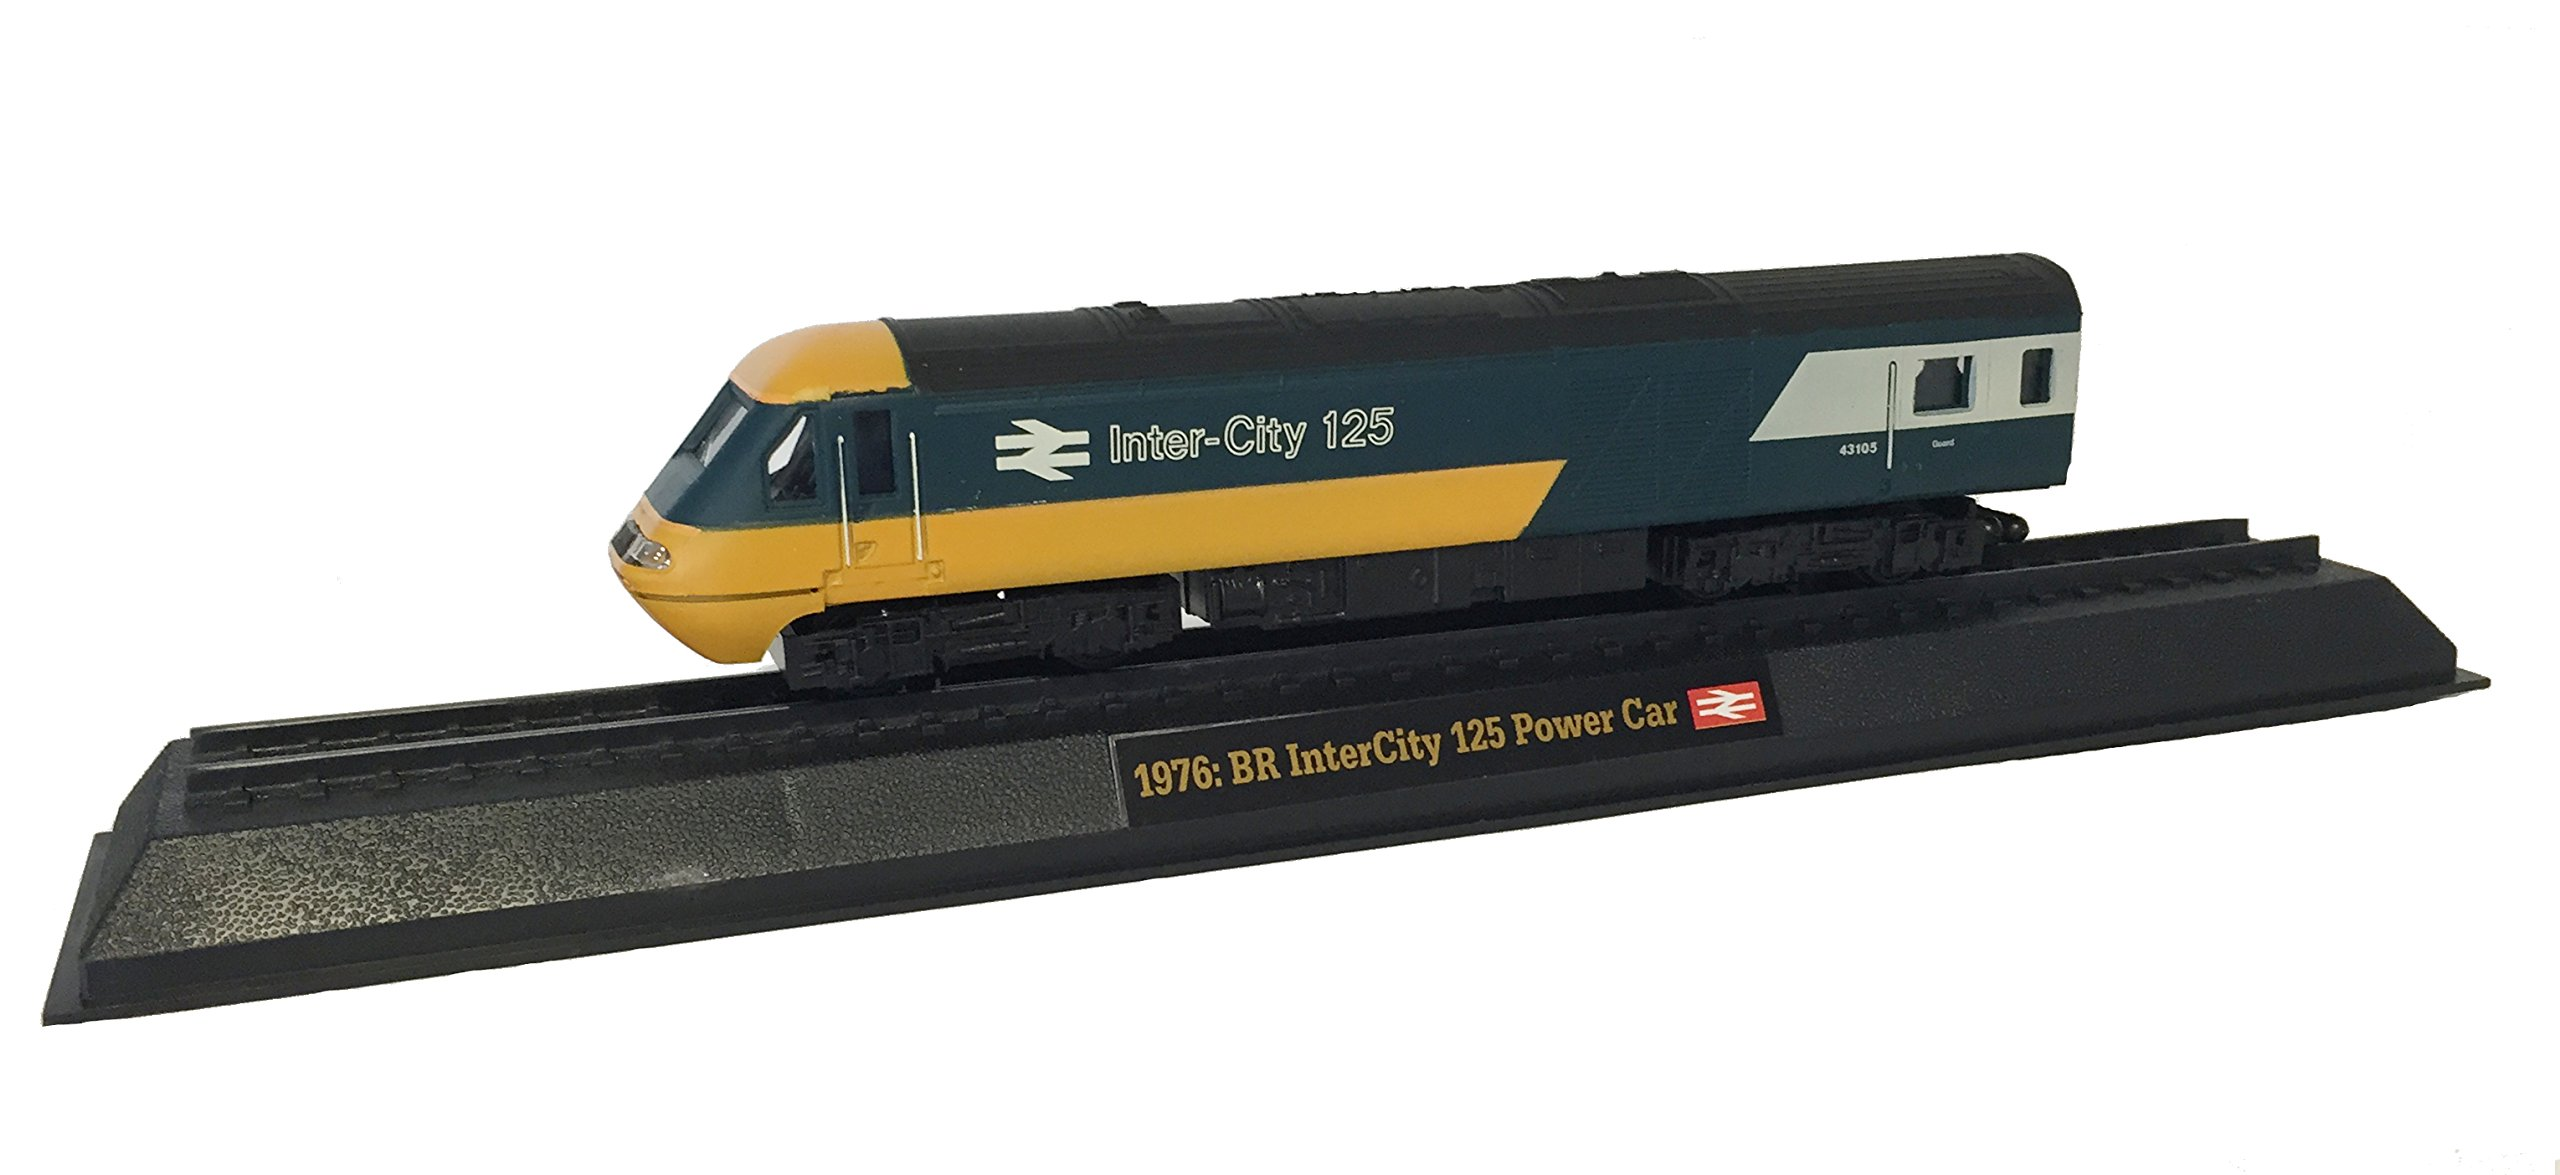 BR InterCity 125 Power Car - 1976 Diecast 1:76 Scale Locomotive Model (Amercom OO-17)